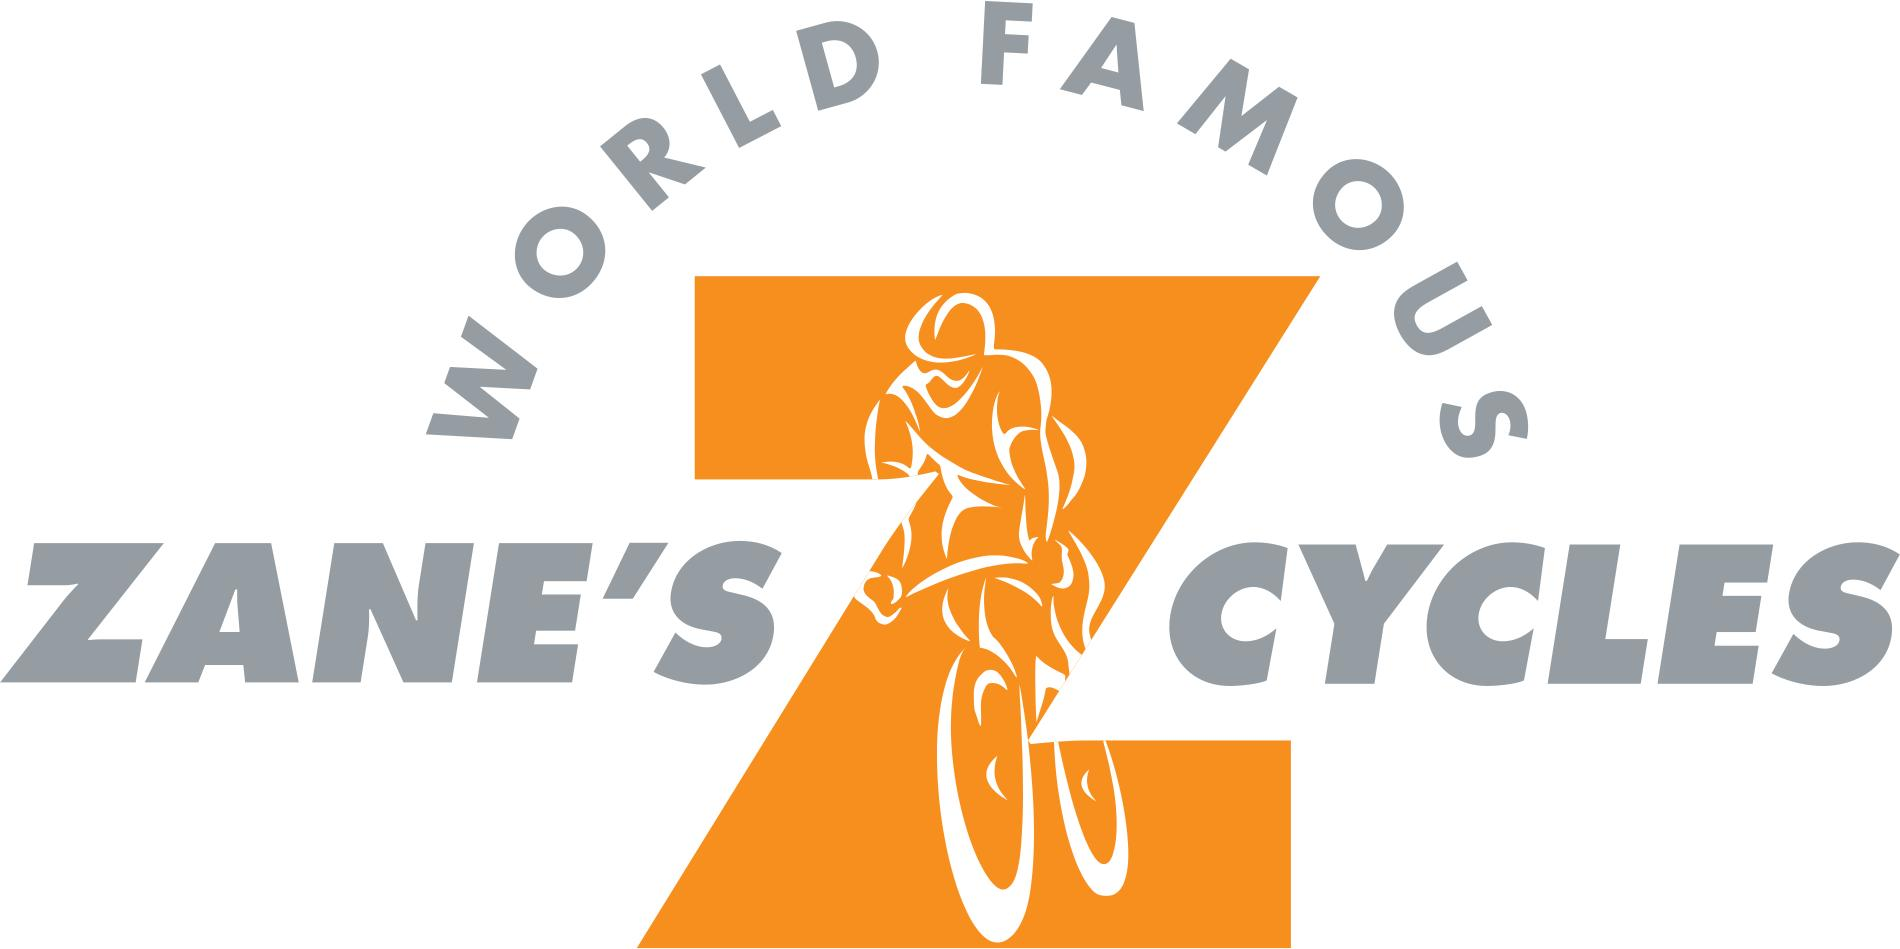 Zane's Cycles Logo